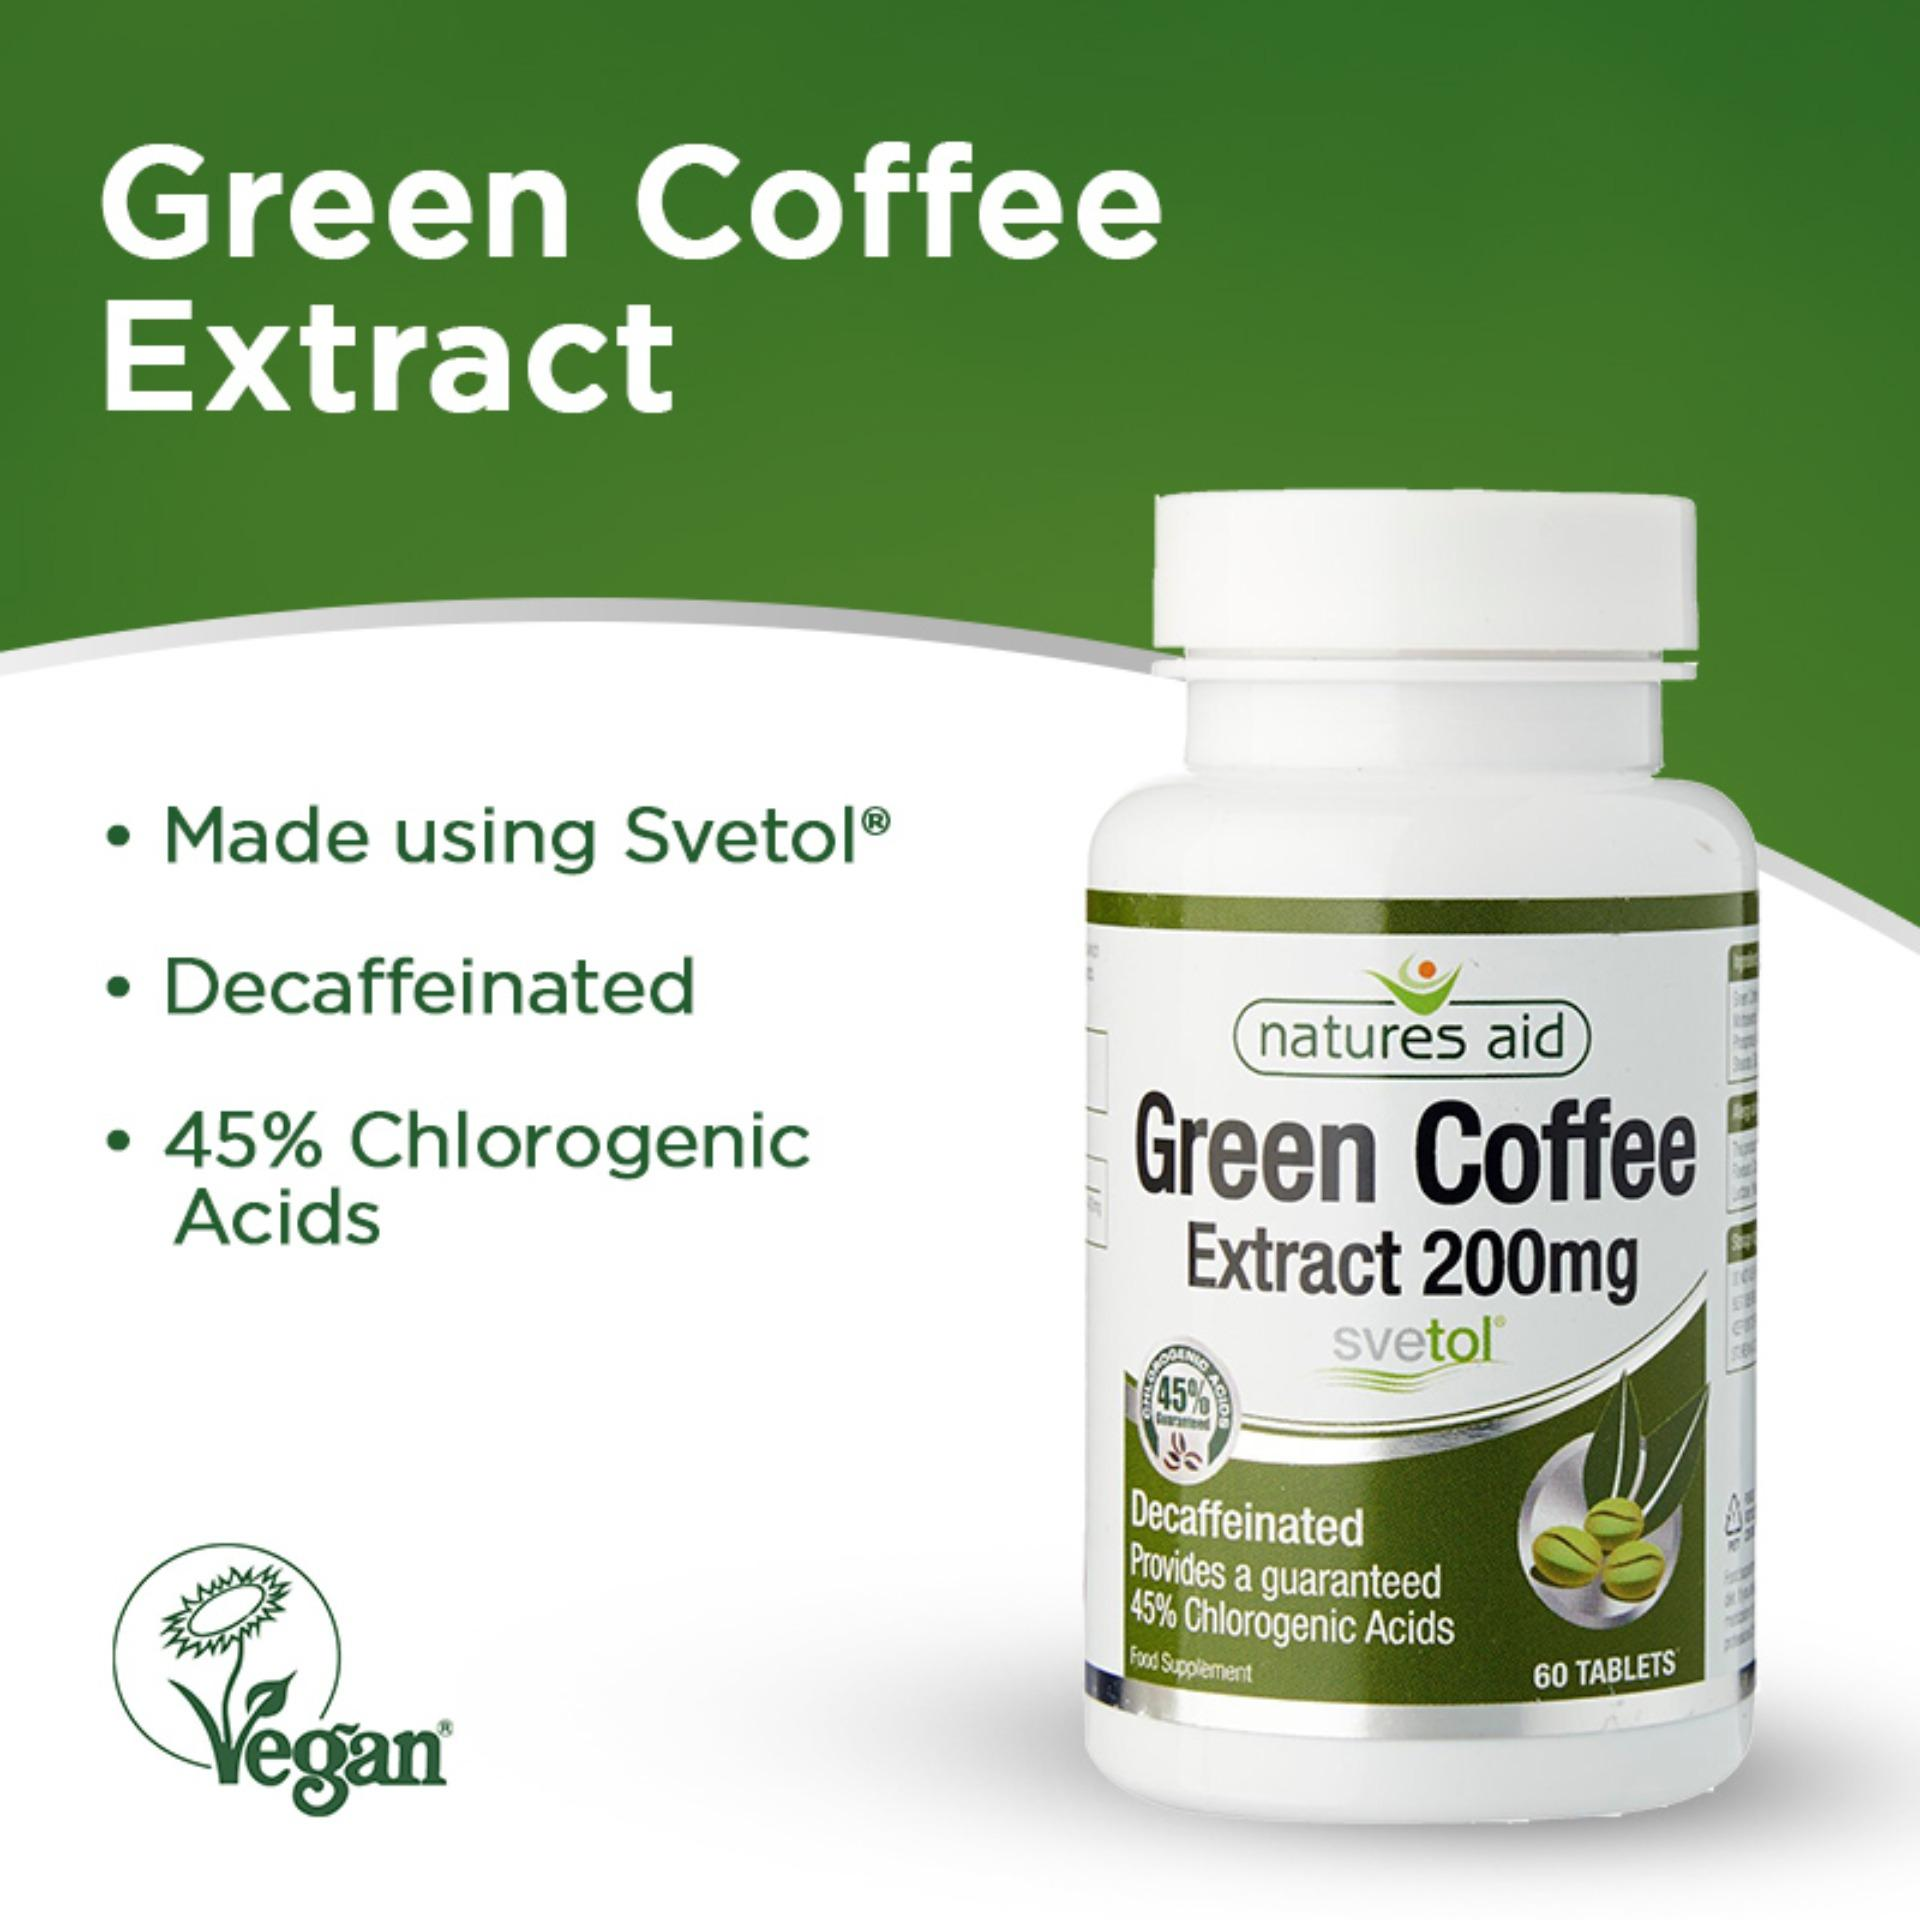 Natures Aid Green Coffee Extract (svetol) 200mg, 60s By Natures Aid.